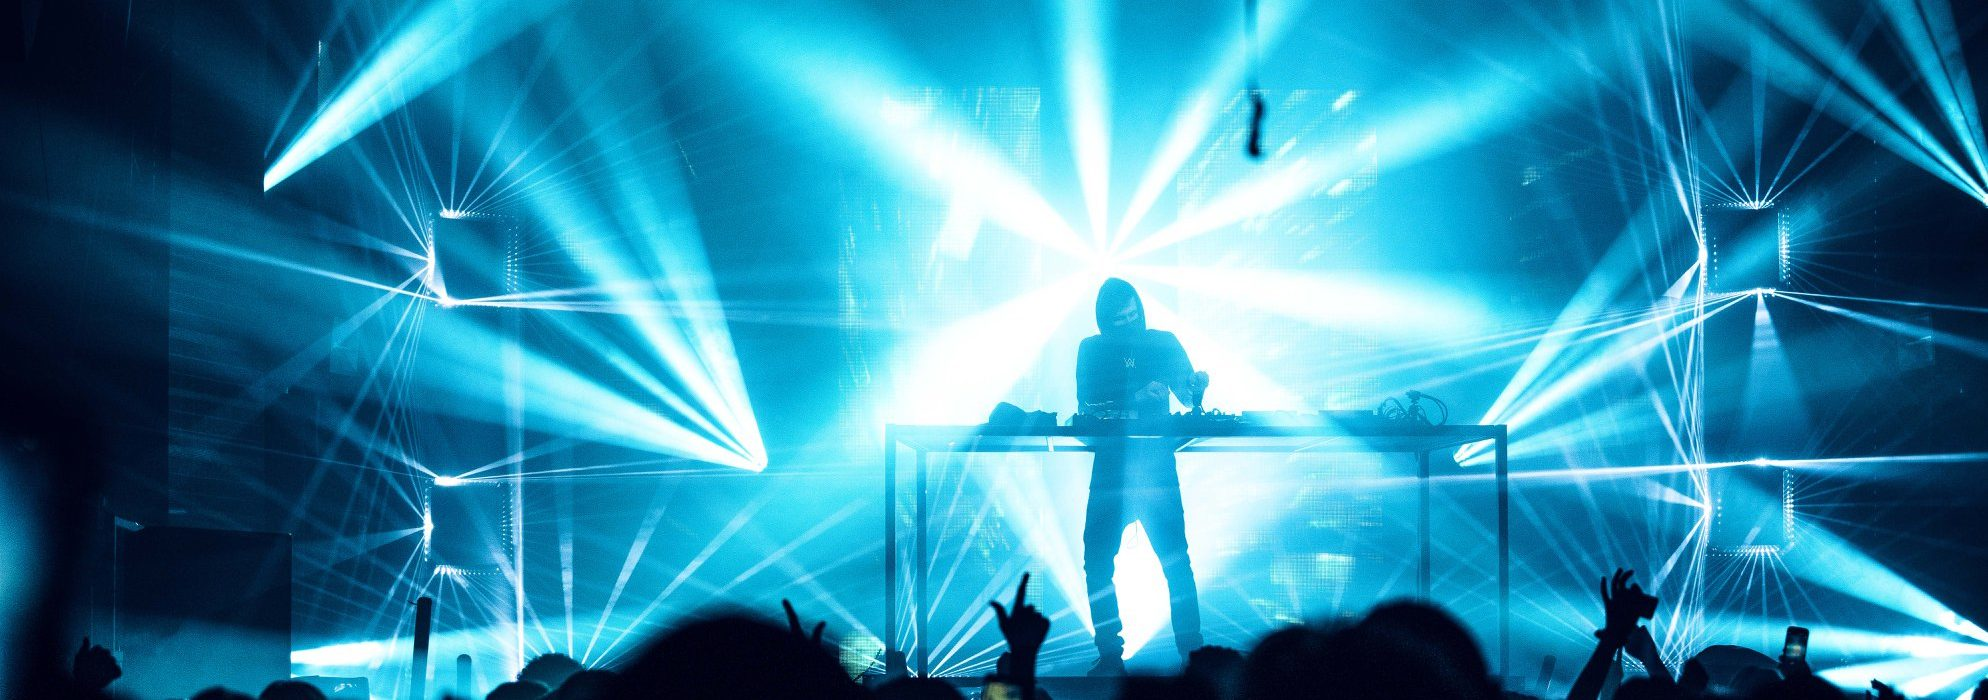 Alan Walker Has Announced More Gigs To Come Later This Year Minuit Une